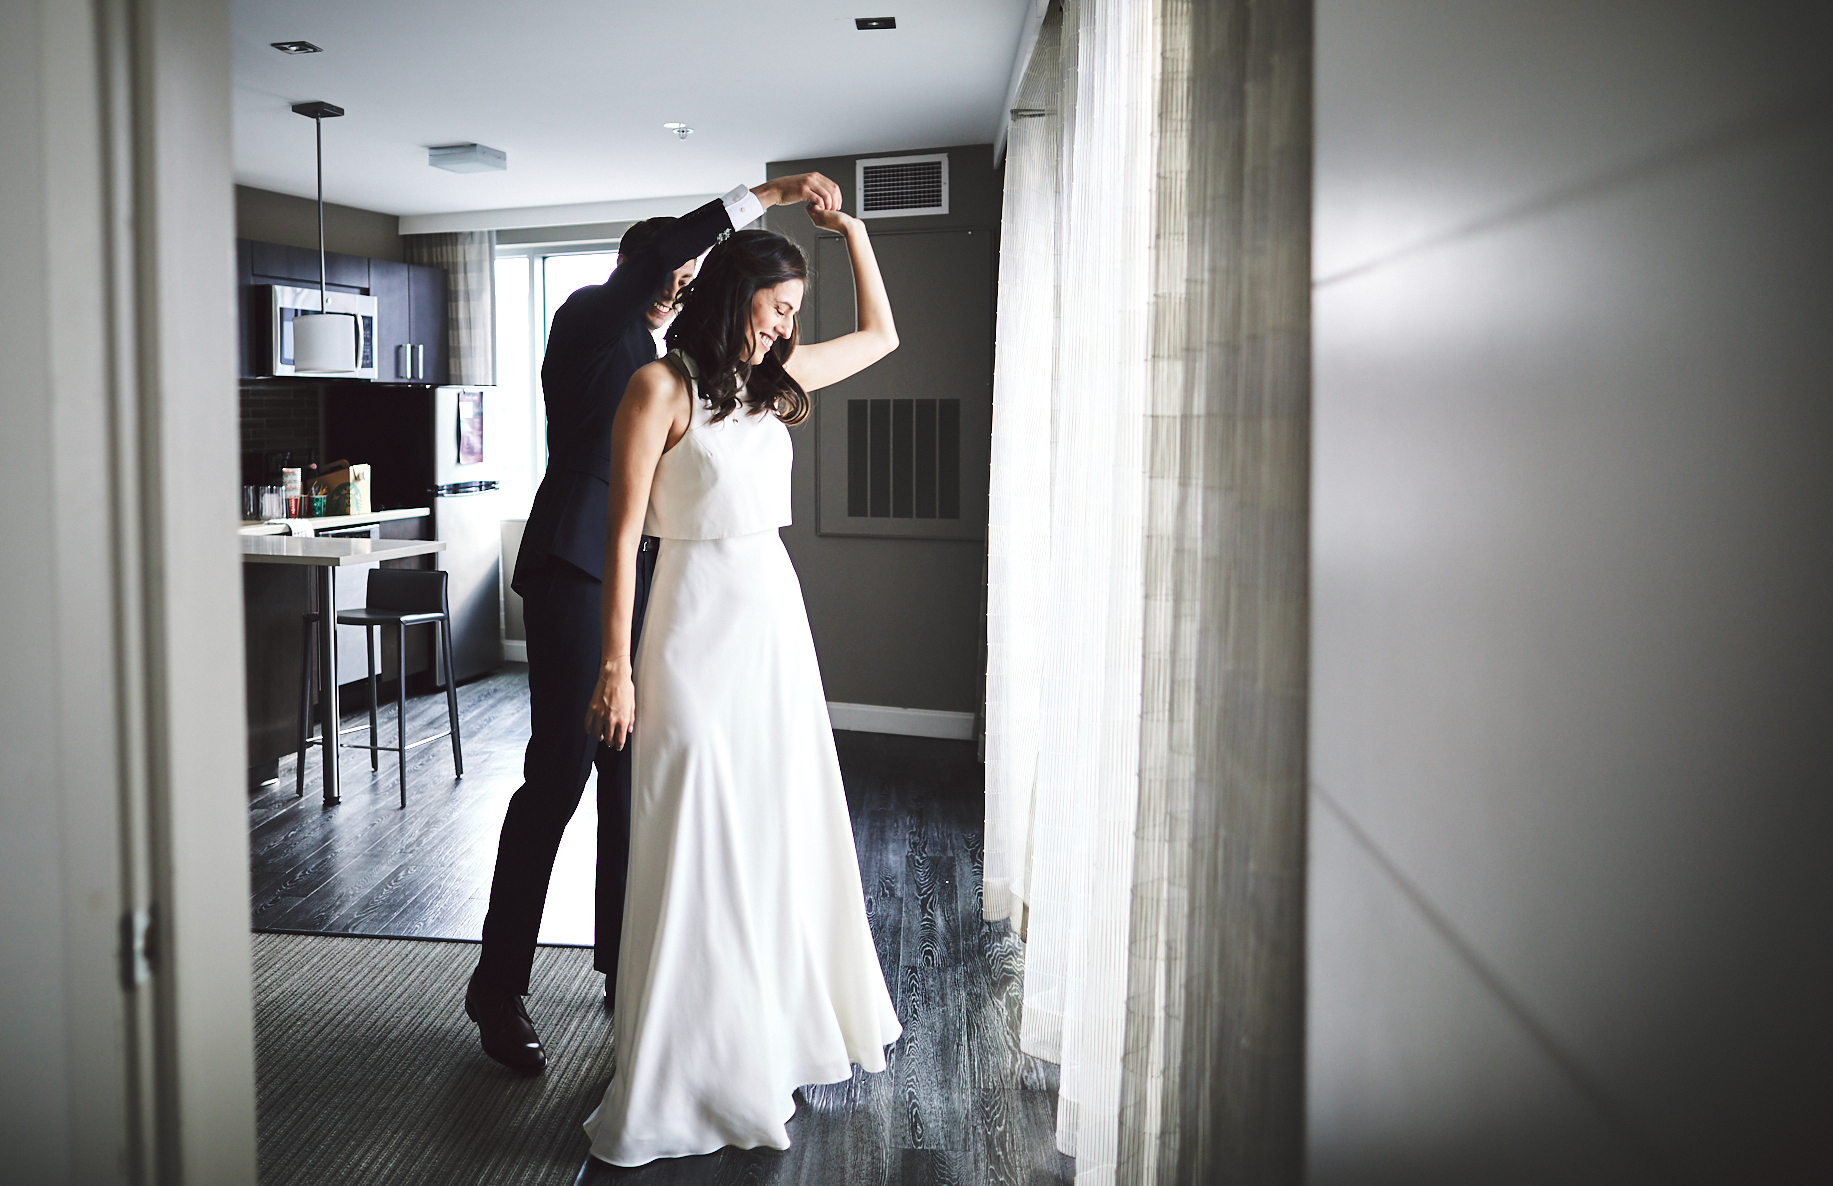 181116_JerseyCityCityHallFallWeddingPhotography_JerseyCityWeddingPhotographer_By_BriJohnsonWeddings_0040.jpg